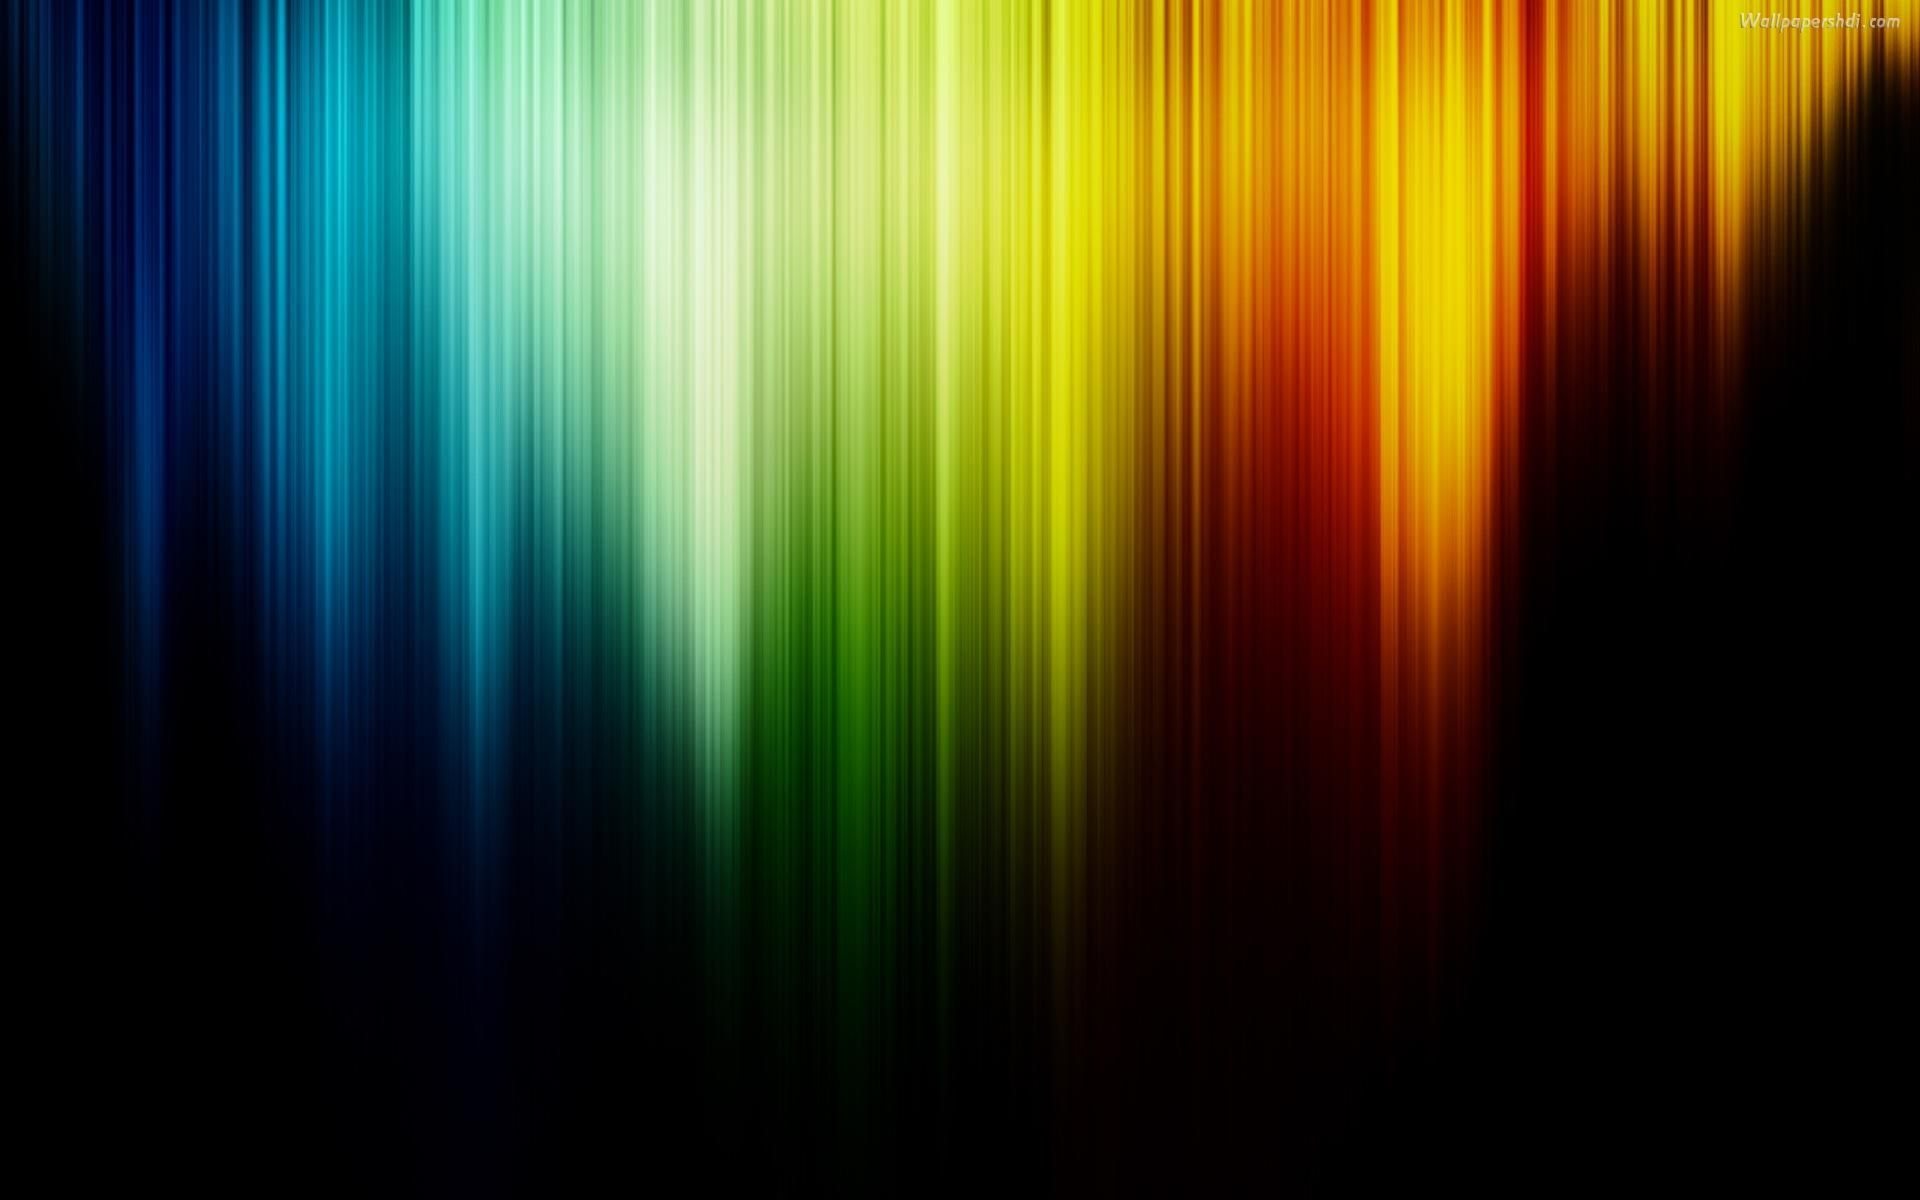 Colorful background pictures